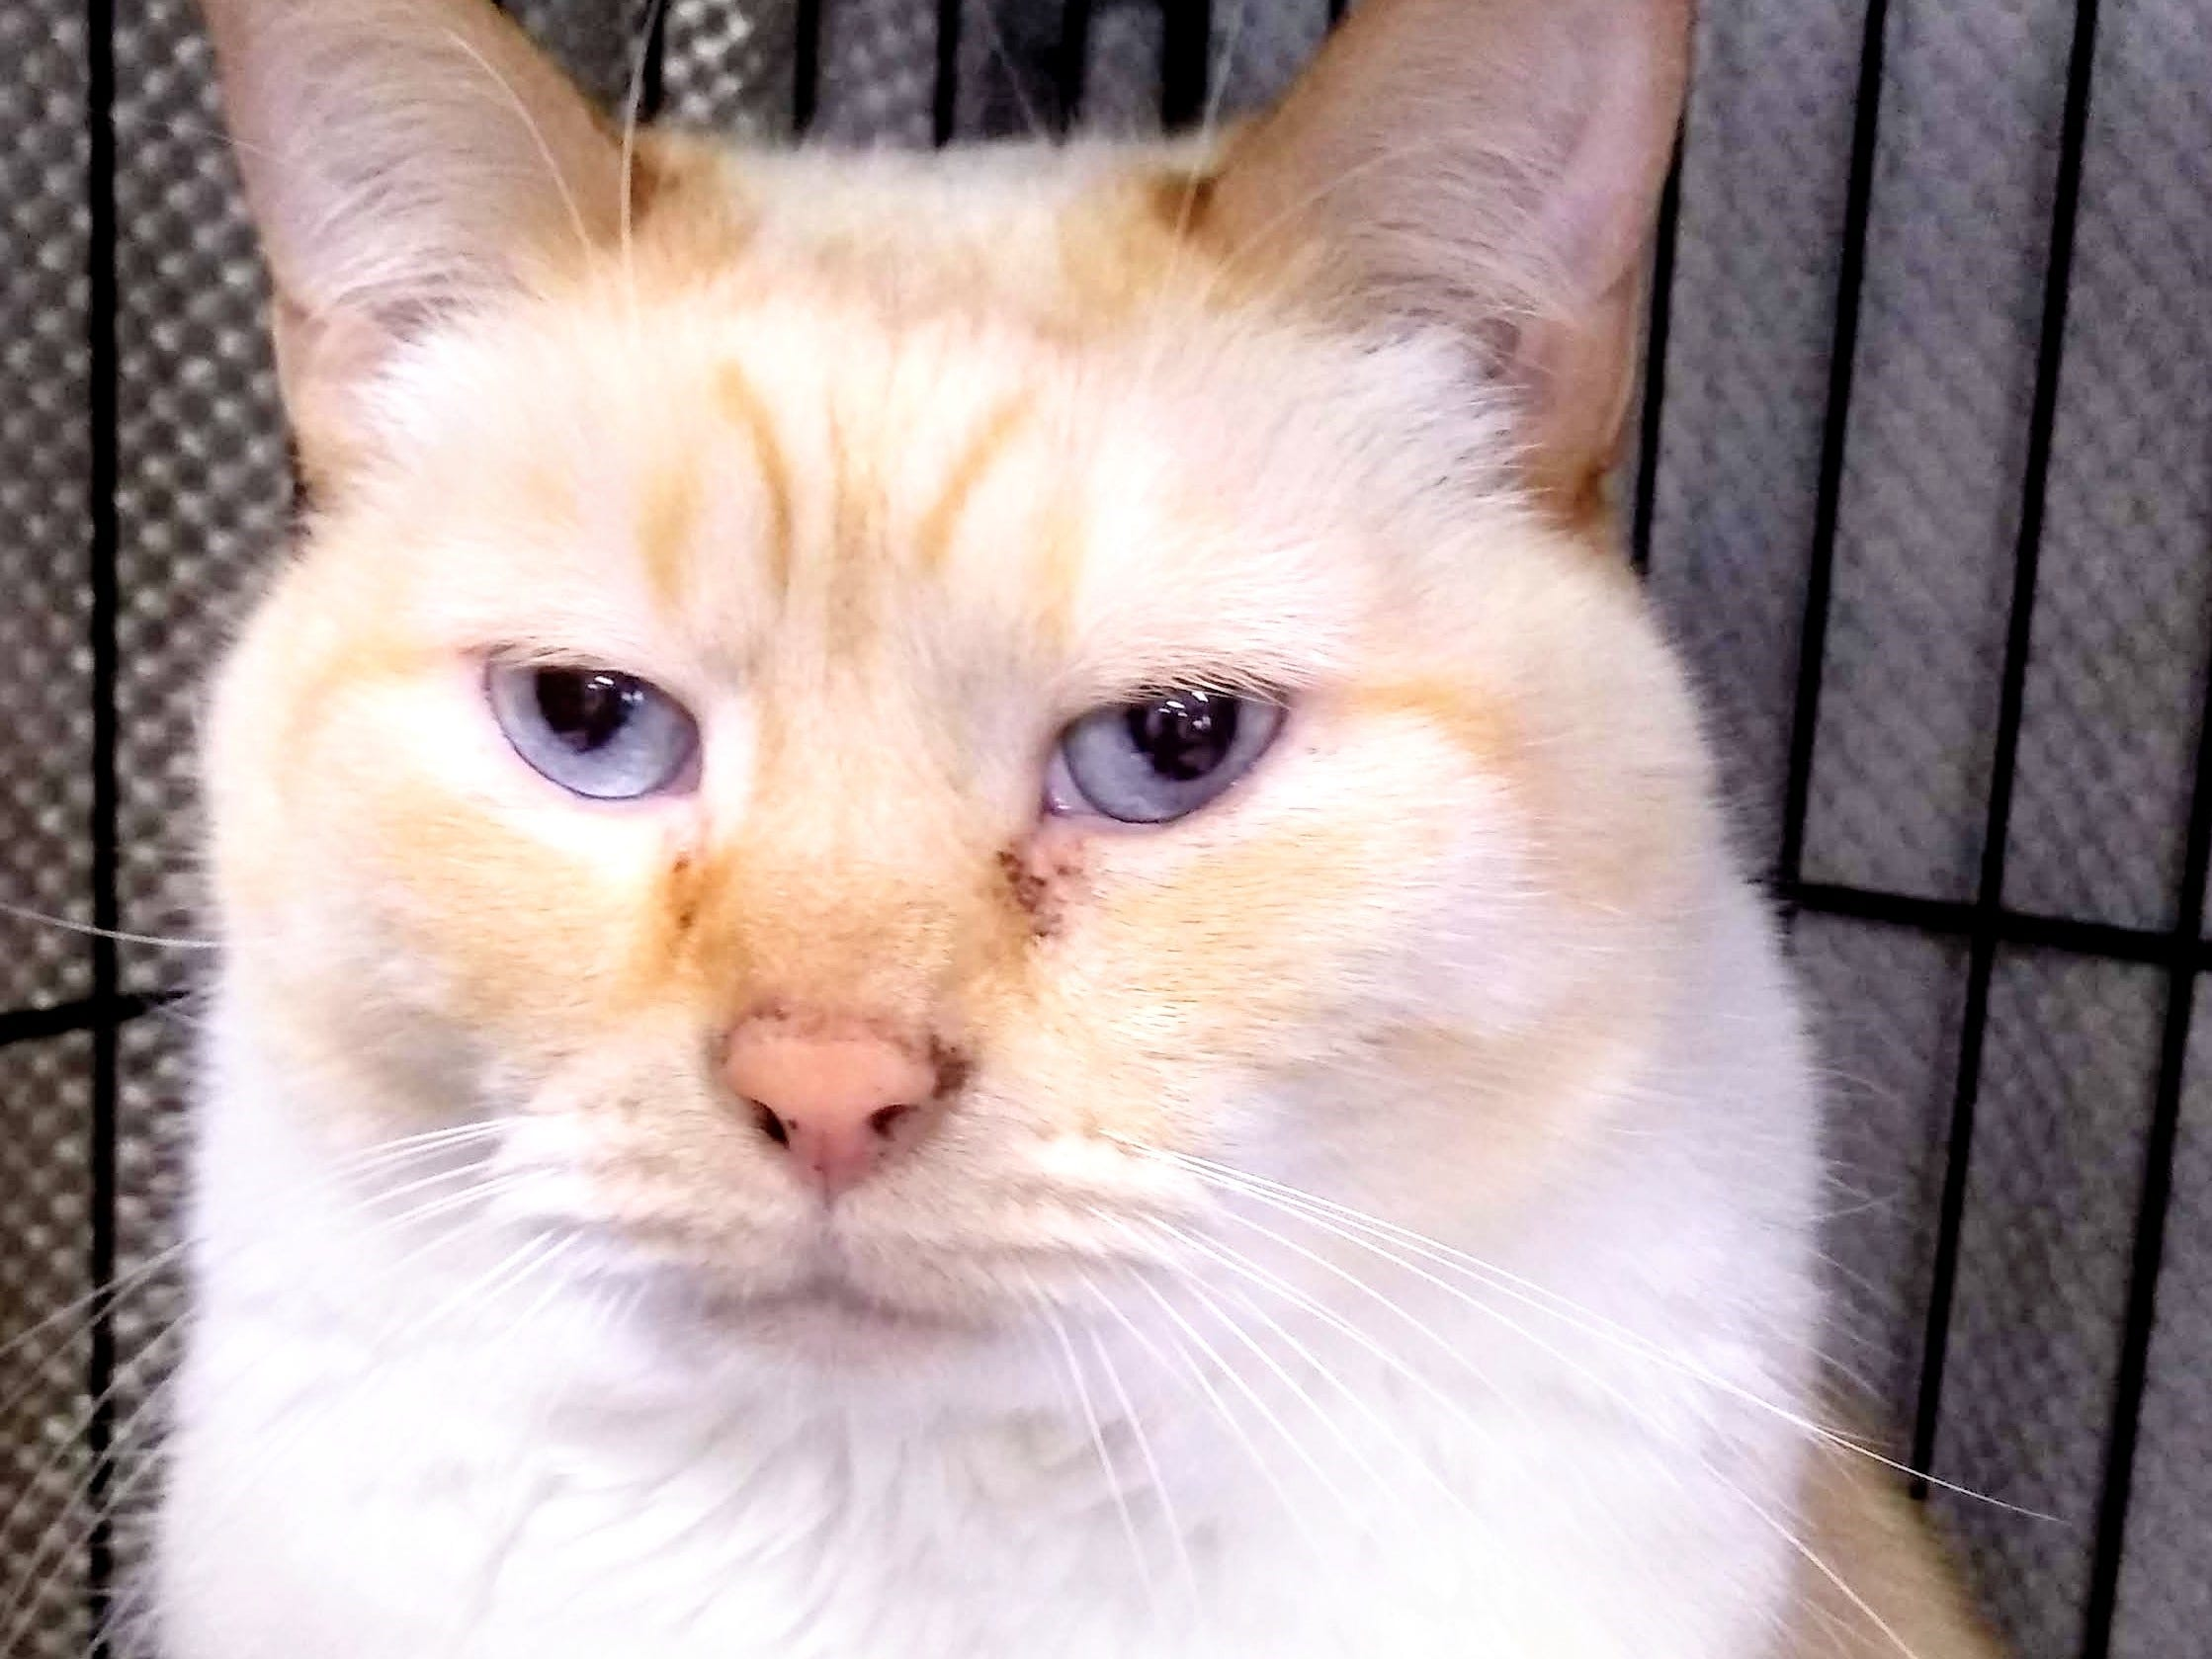 Bentley is 8 years old. He is a big bundle of love who loves human interaction and enjoys belly rubs Bentley is OK with dogs, but would prefer to be the only cat. An adult home with older teenagers would be best. For more information, visit www.sfof.org or call 503-362-5611.